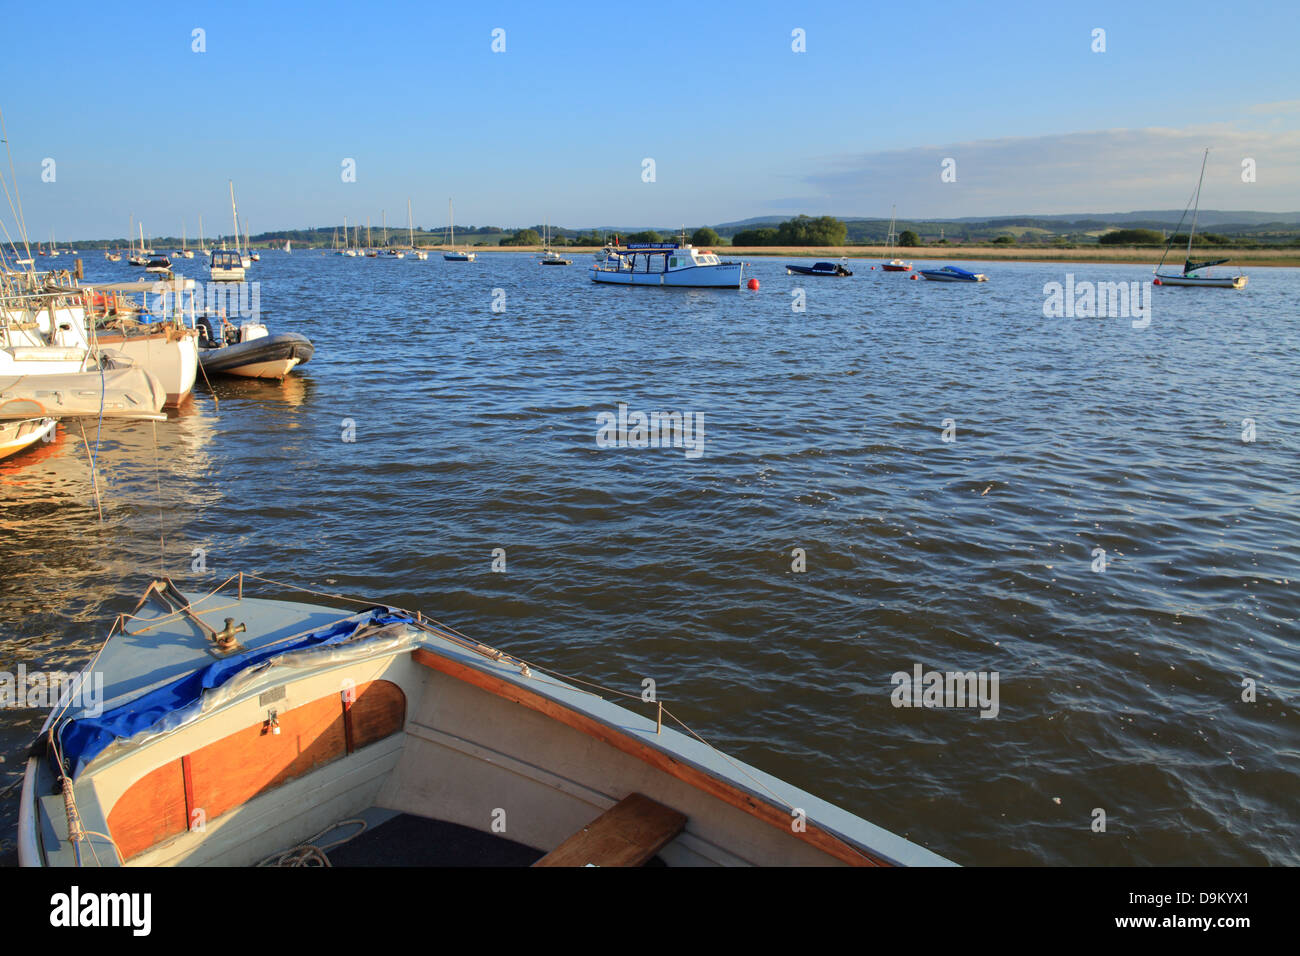 Topsham, view towards Exmouth at  high tide, Devon, England, UK - Stock Image